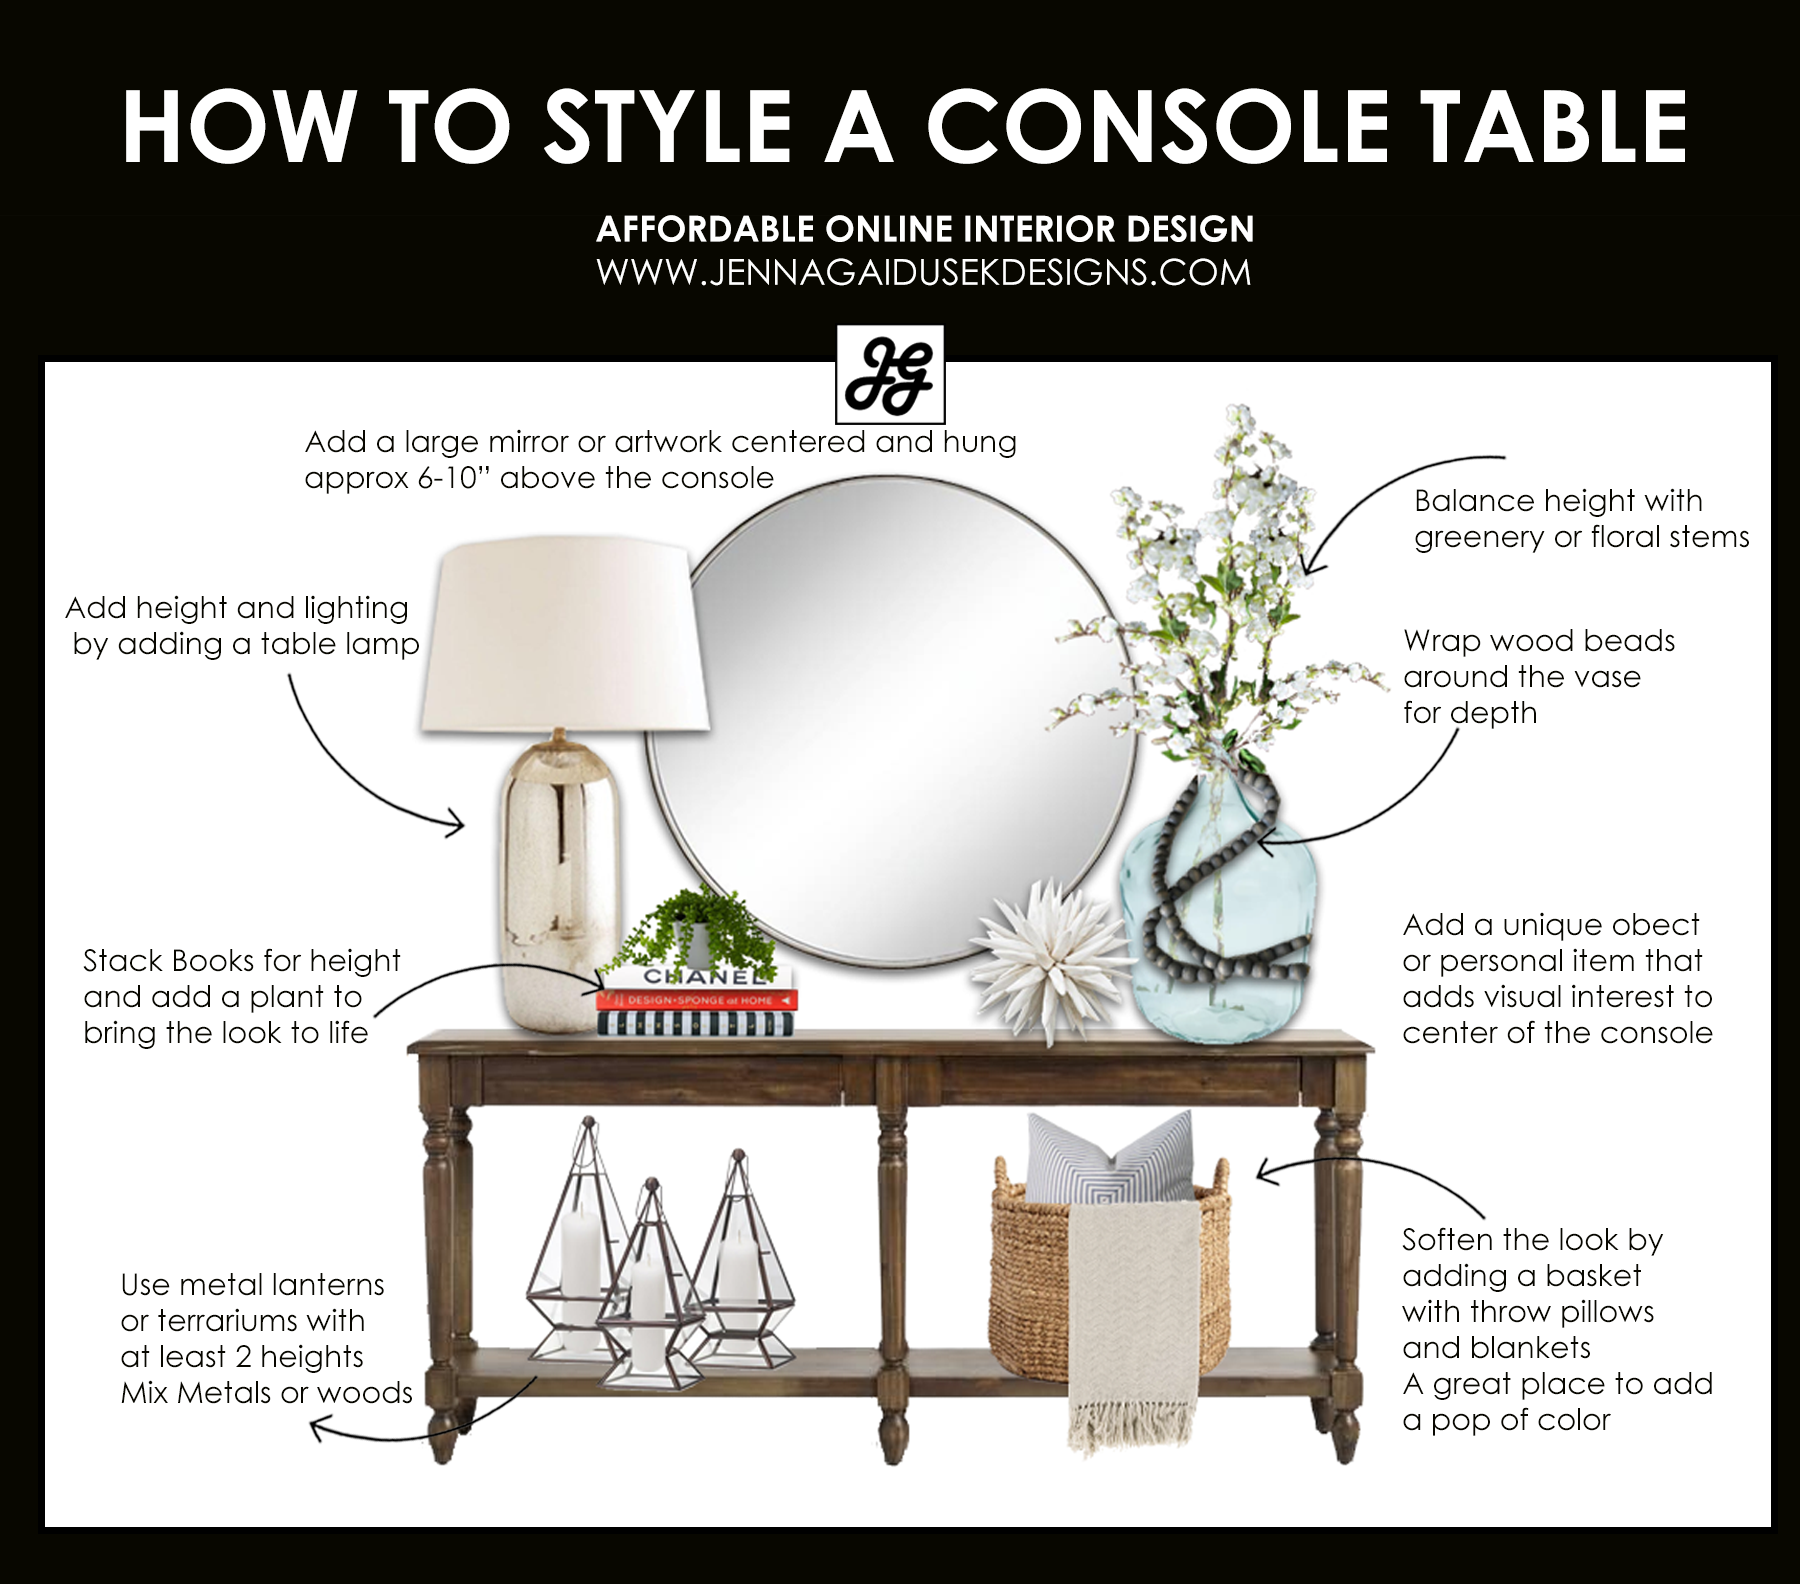 How to Style a Console Table with a Refined Farmhouse Touch — Jenna Gaidusek Designs